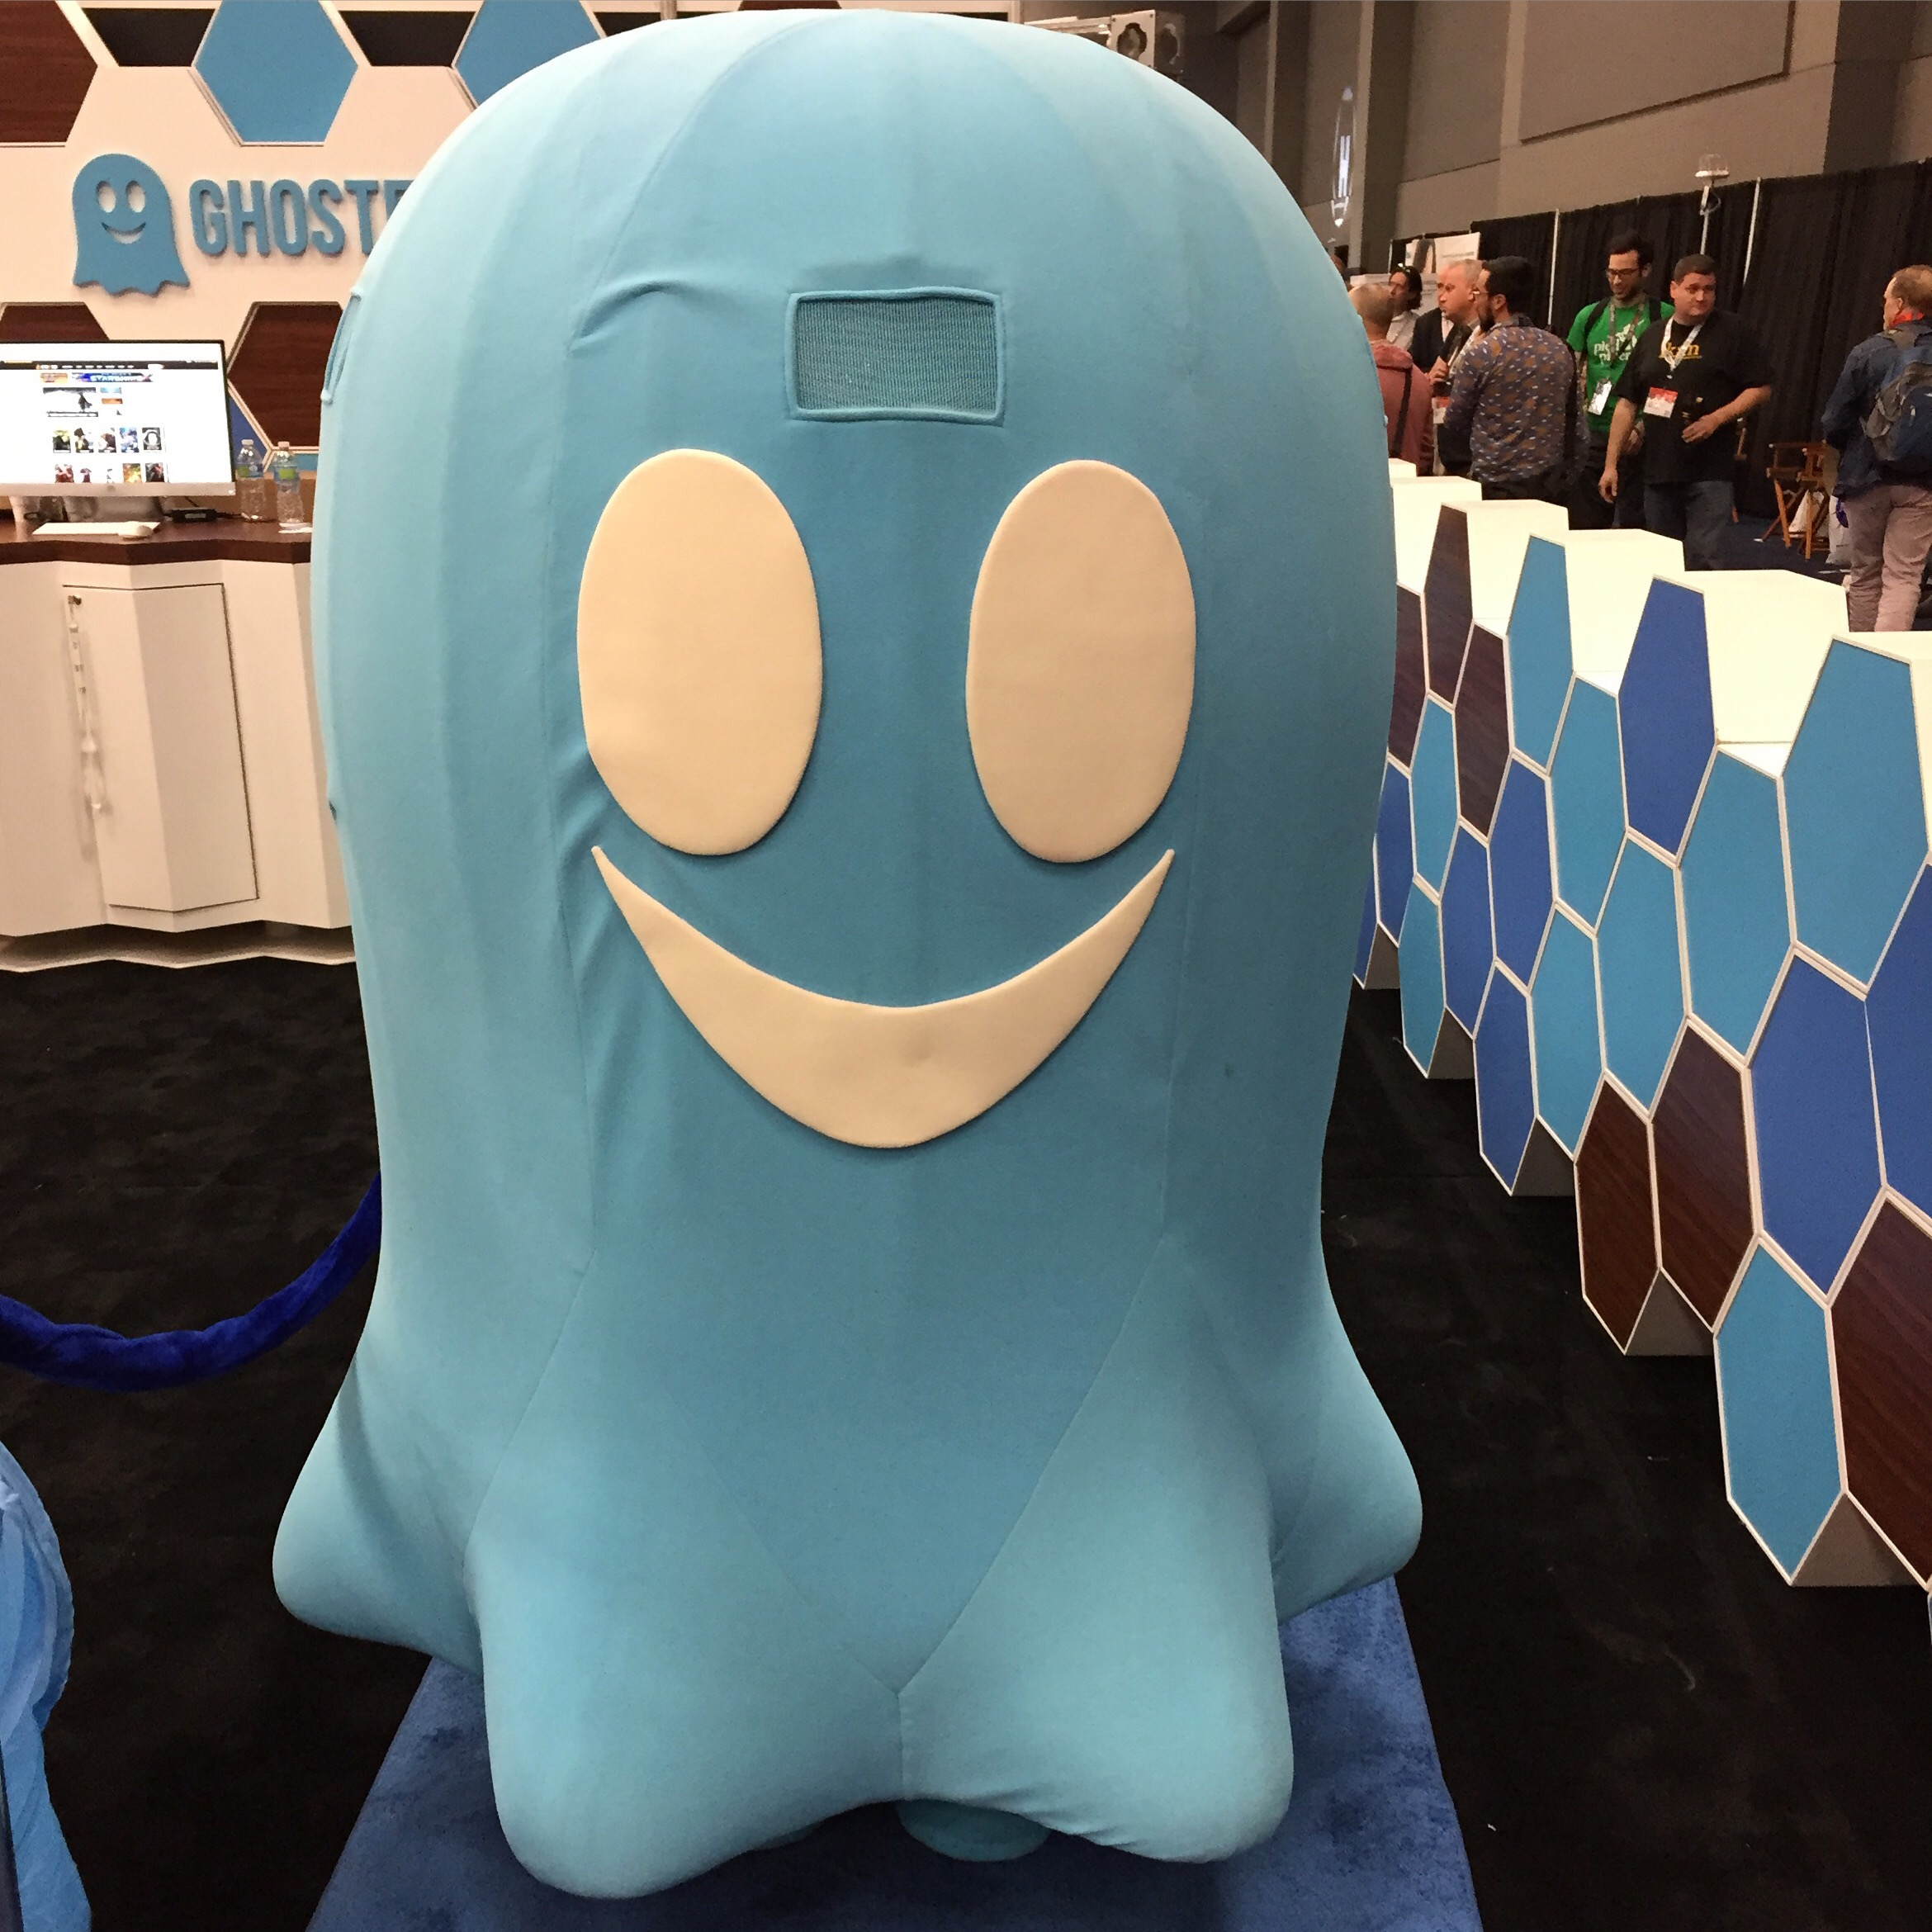 Ghostery mascot